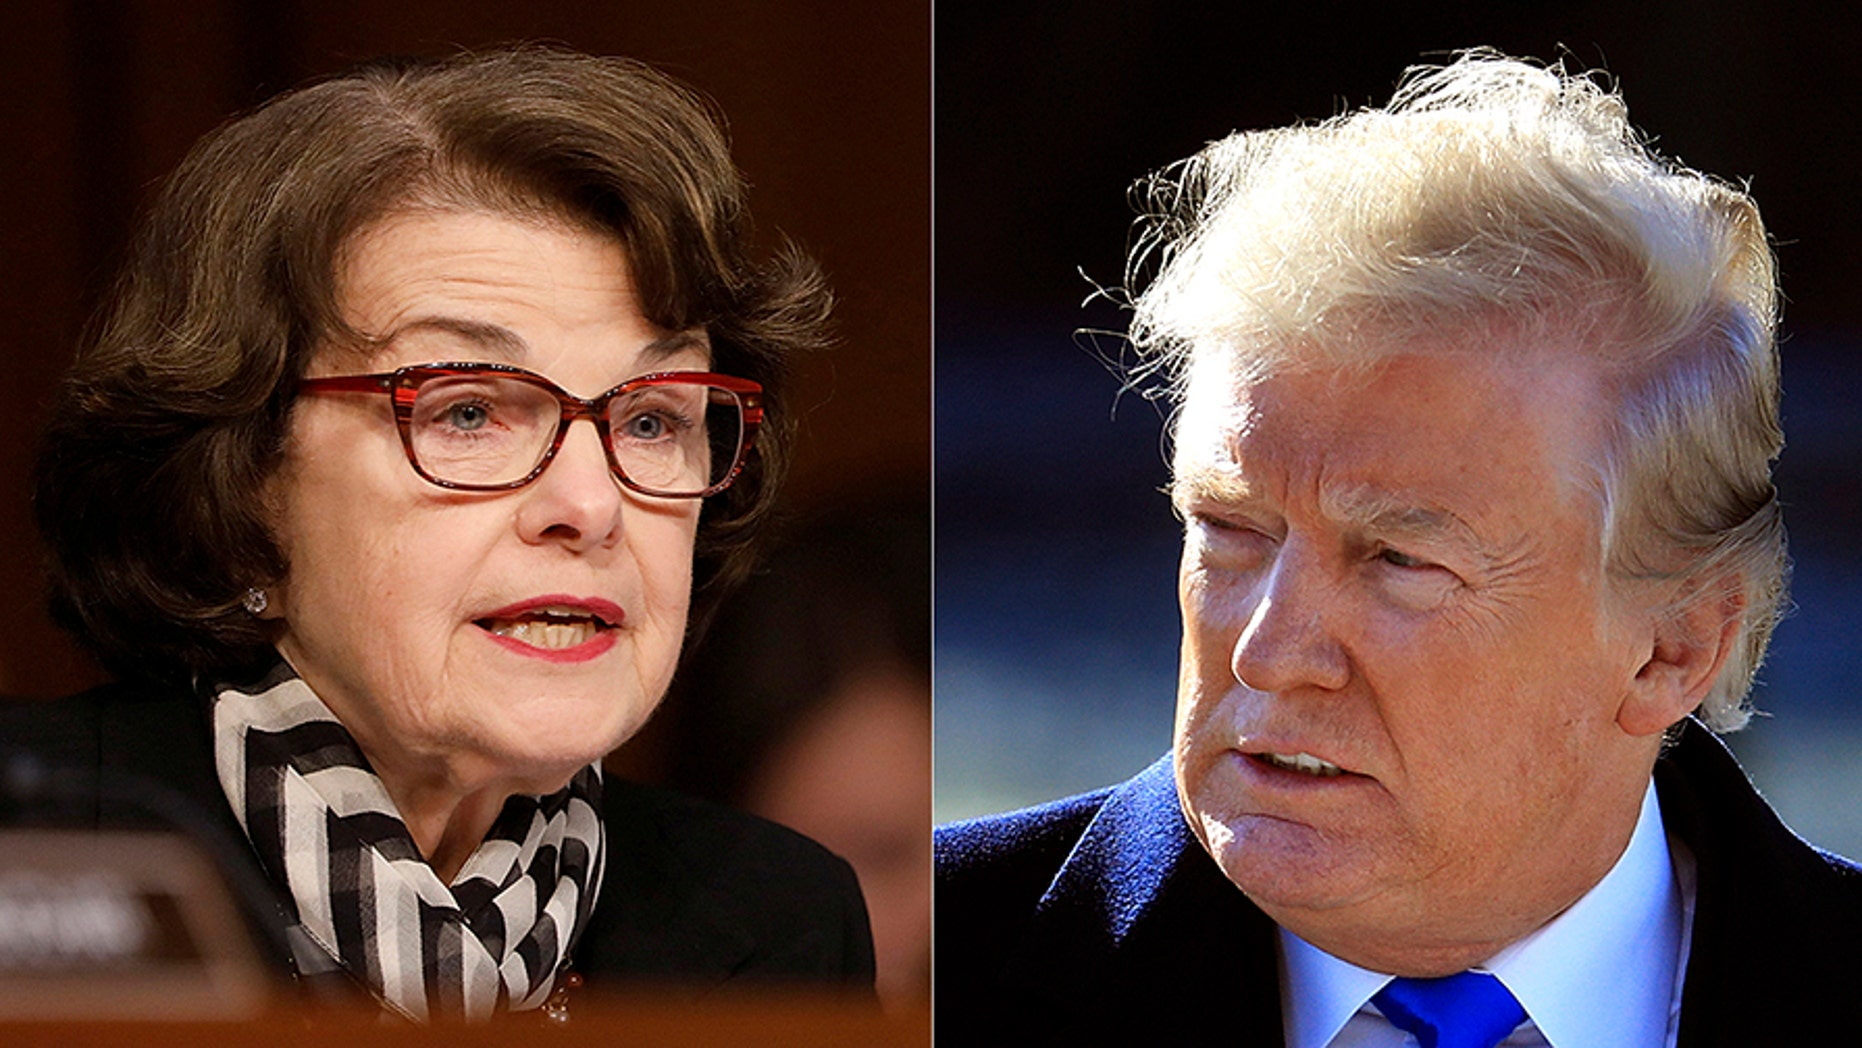 fbi s handling of alleged feinstein spy spurs claims of double standard with trump campaign fox news fbi s handling of alleged feinstein spy